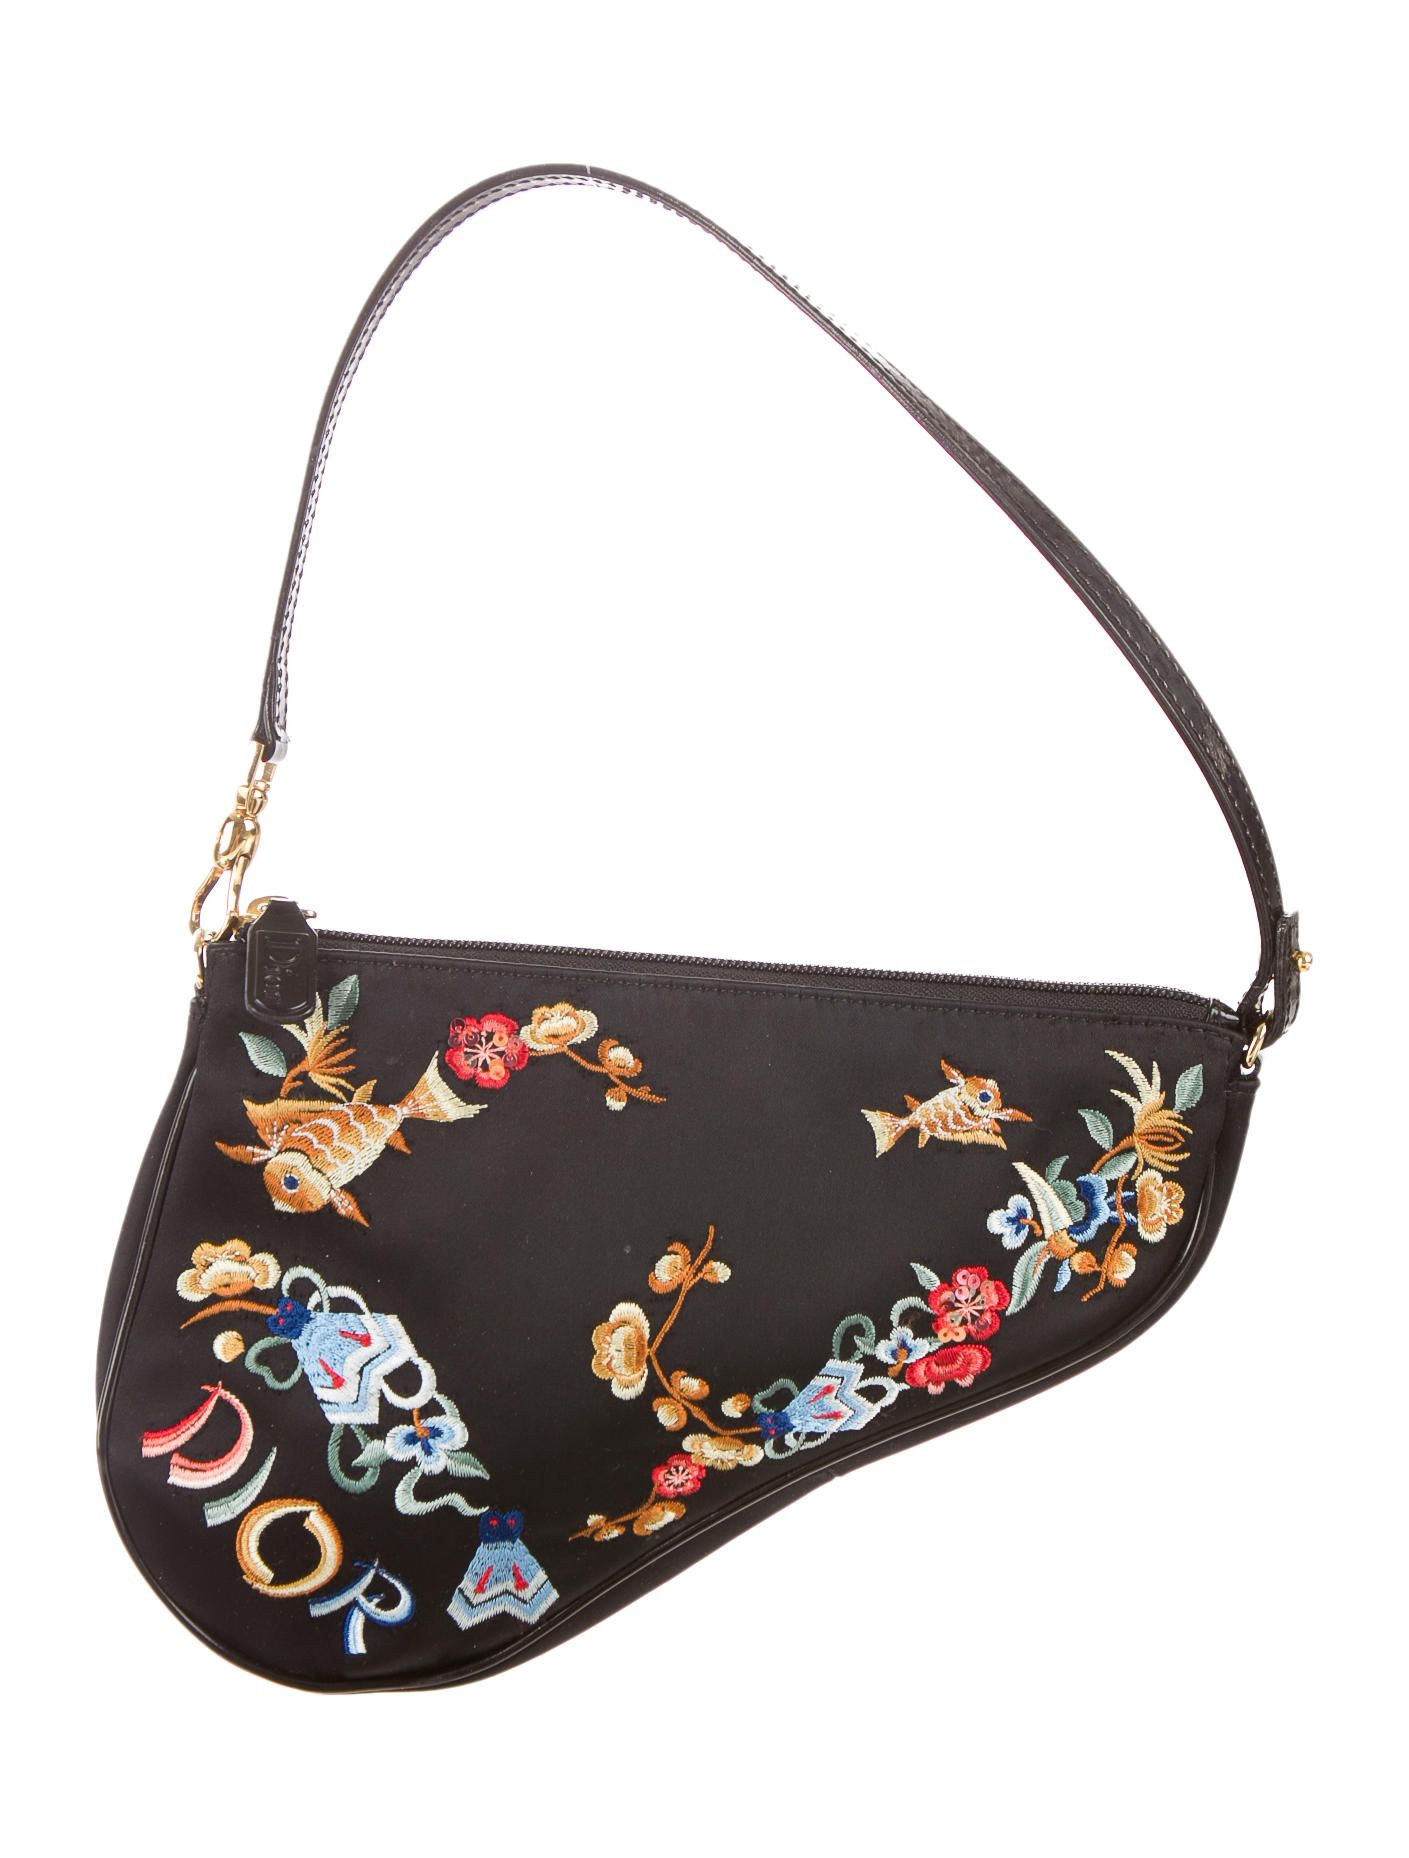 2f2f044237 Black and multicolor Christian small Saddle bag with floral and fish  embroidery throughout